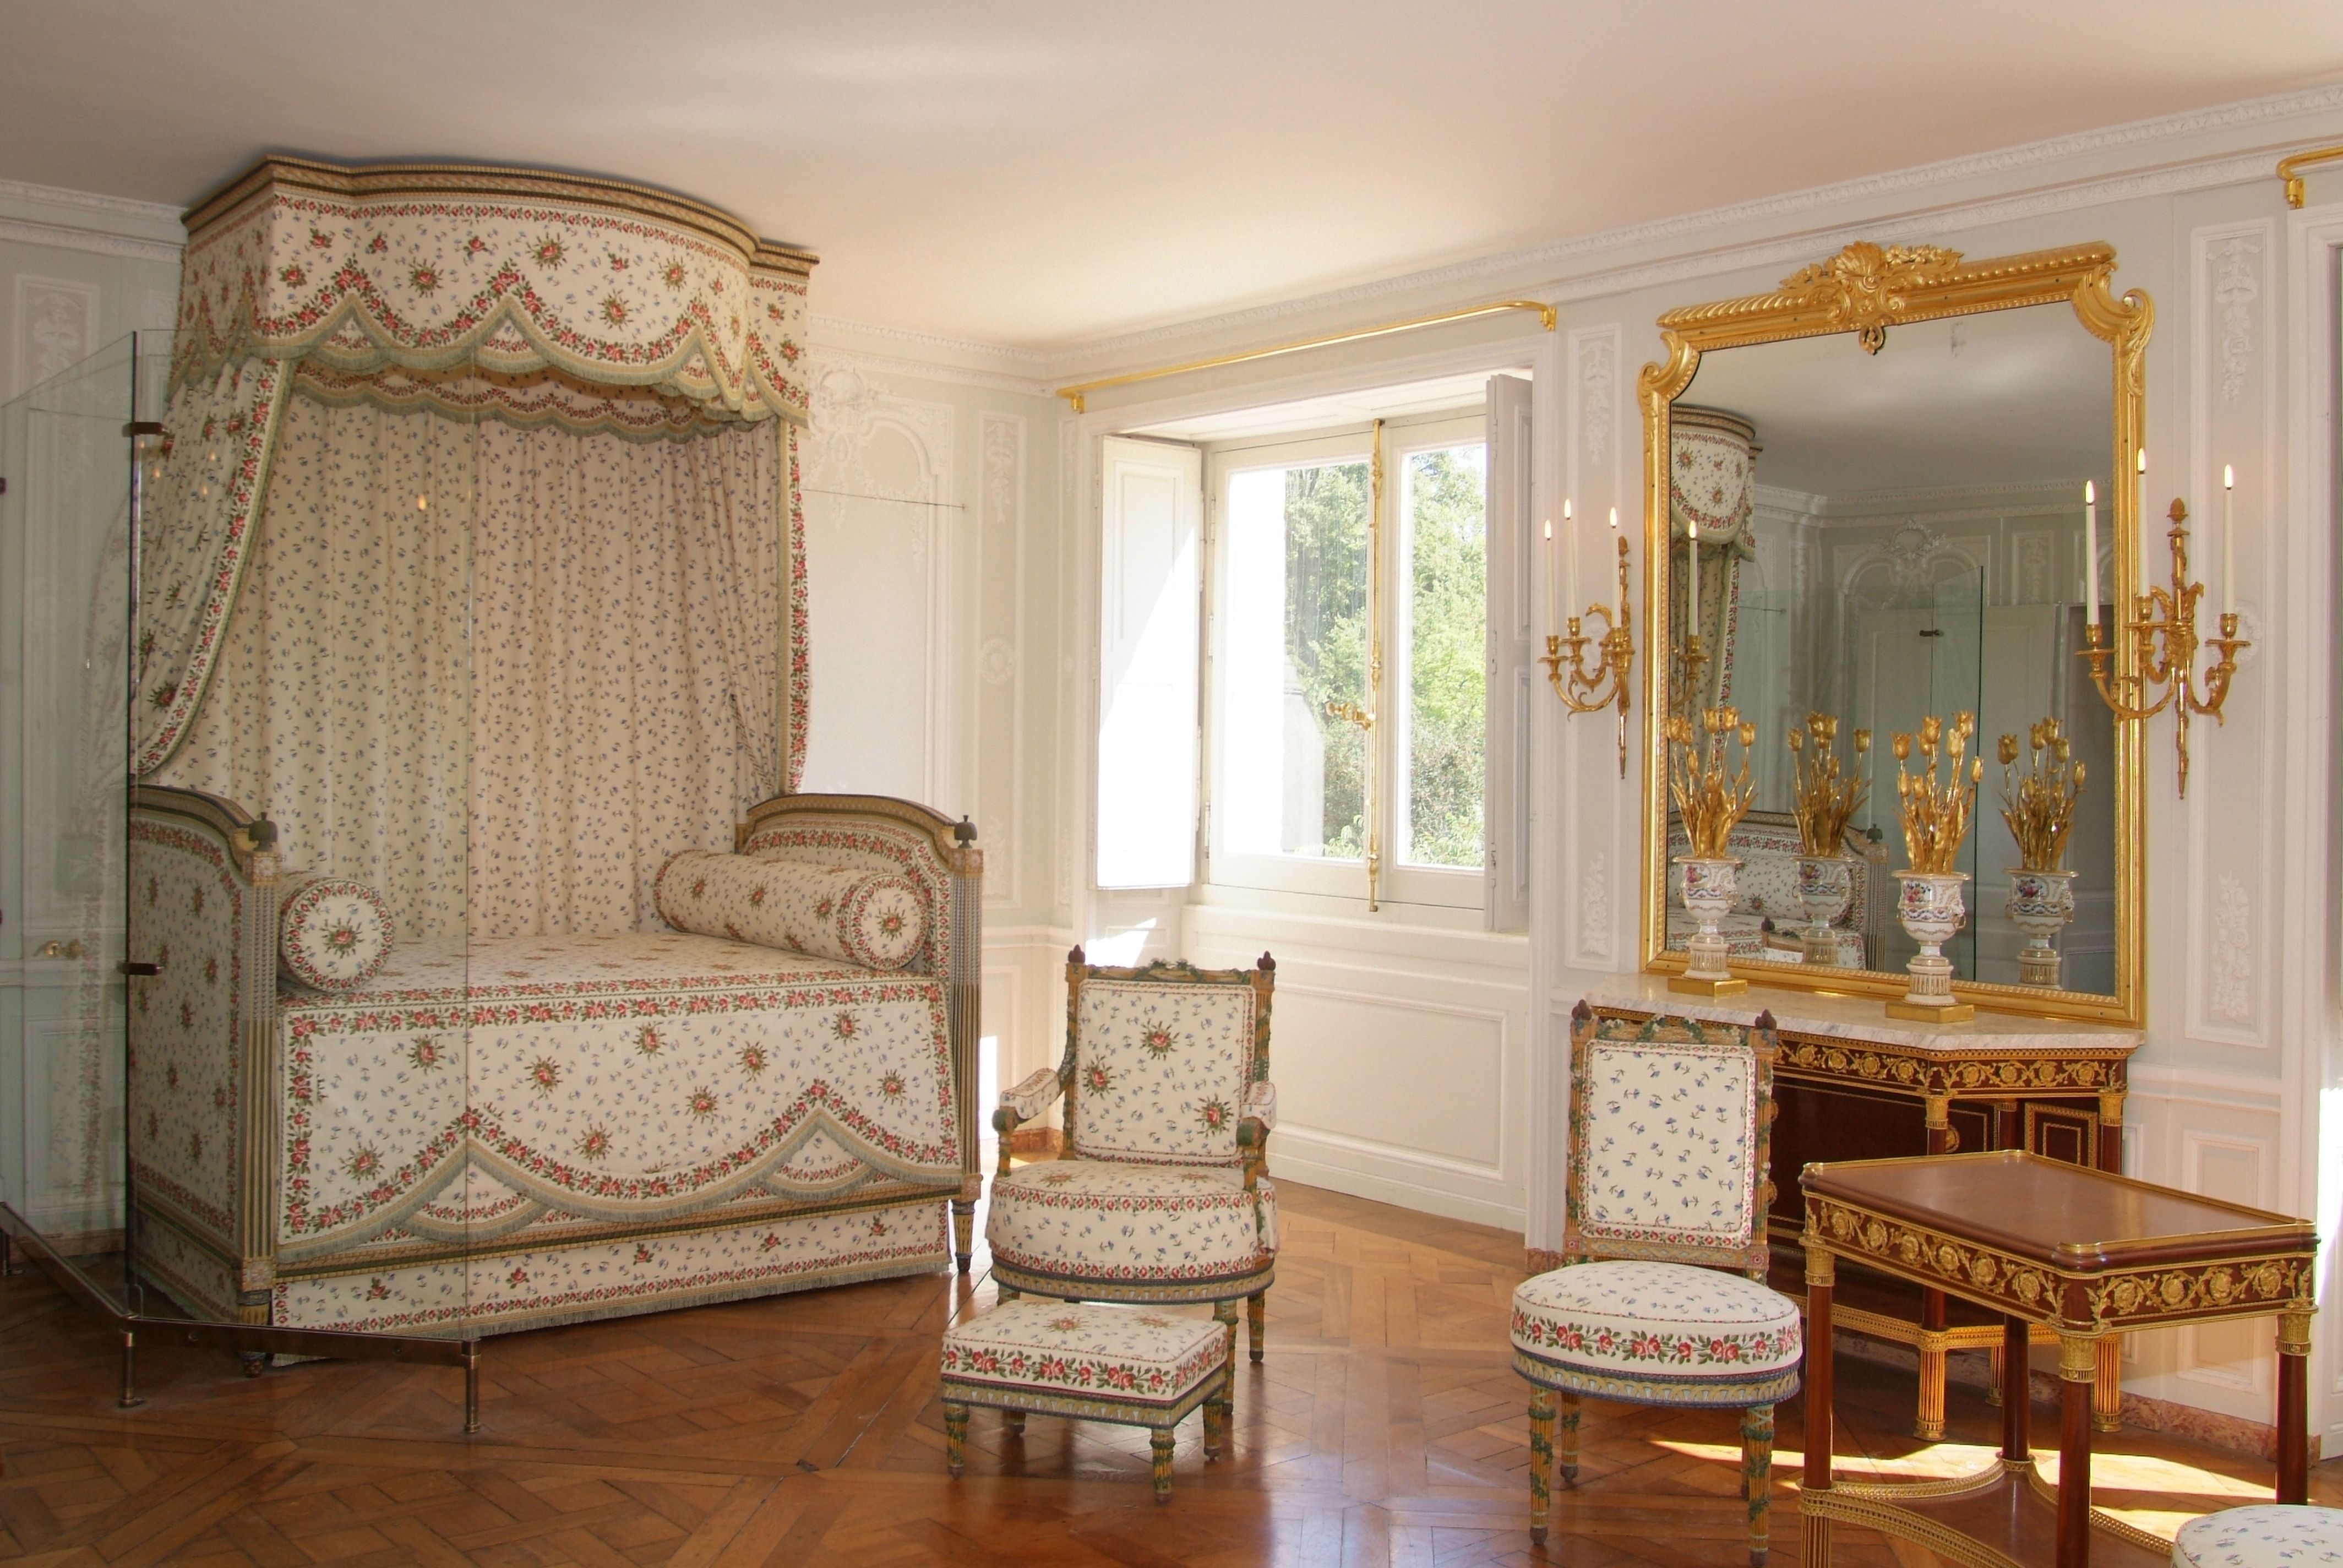 Marie Antoinette Inspired Bedroom Bed Cornices Thistles French Revolution And Peonies